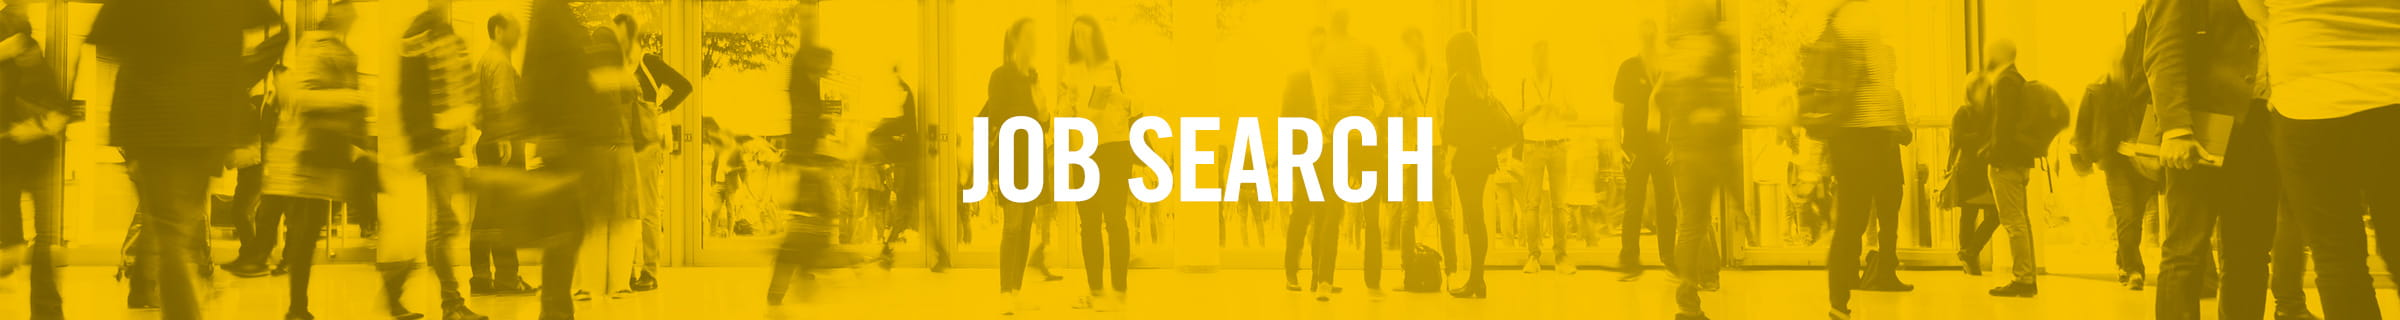 Crowd of business people- Job search